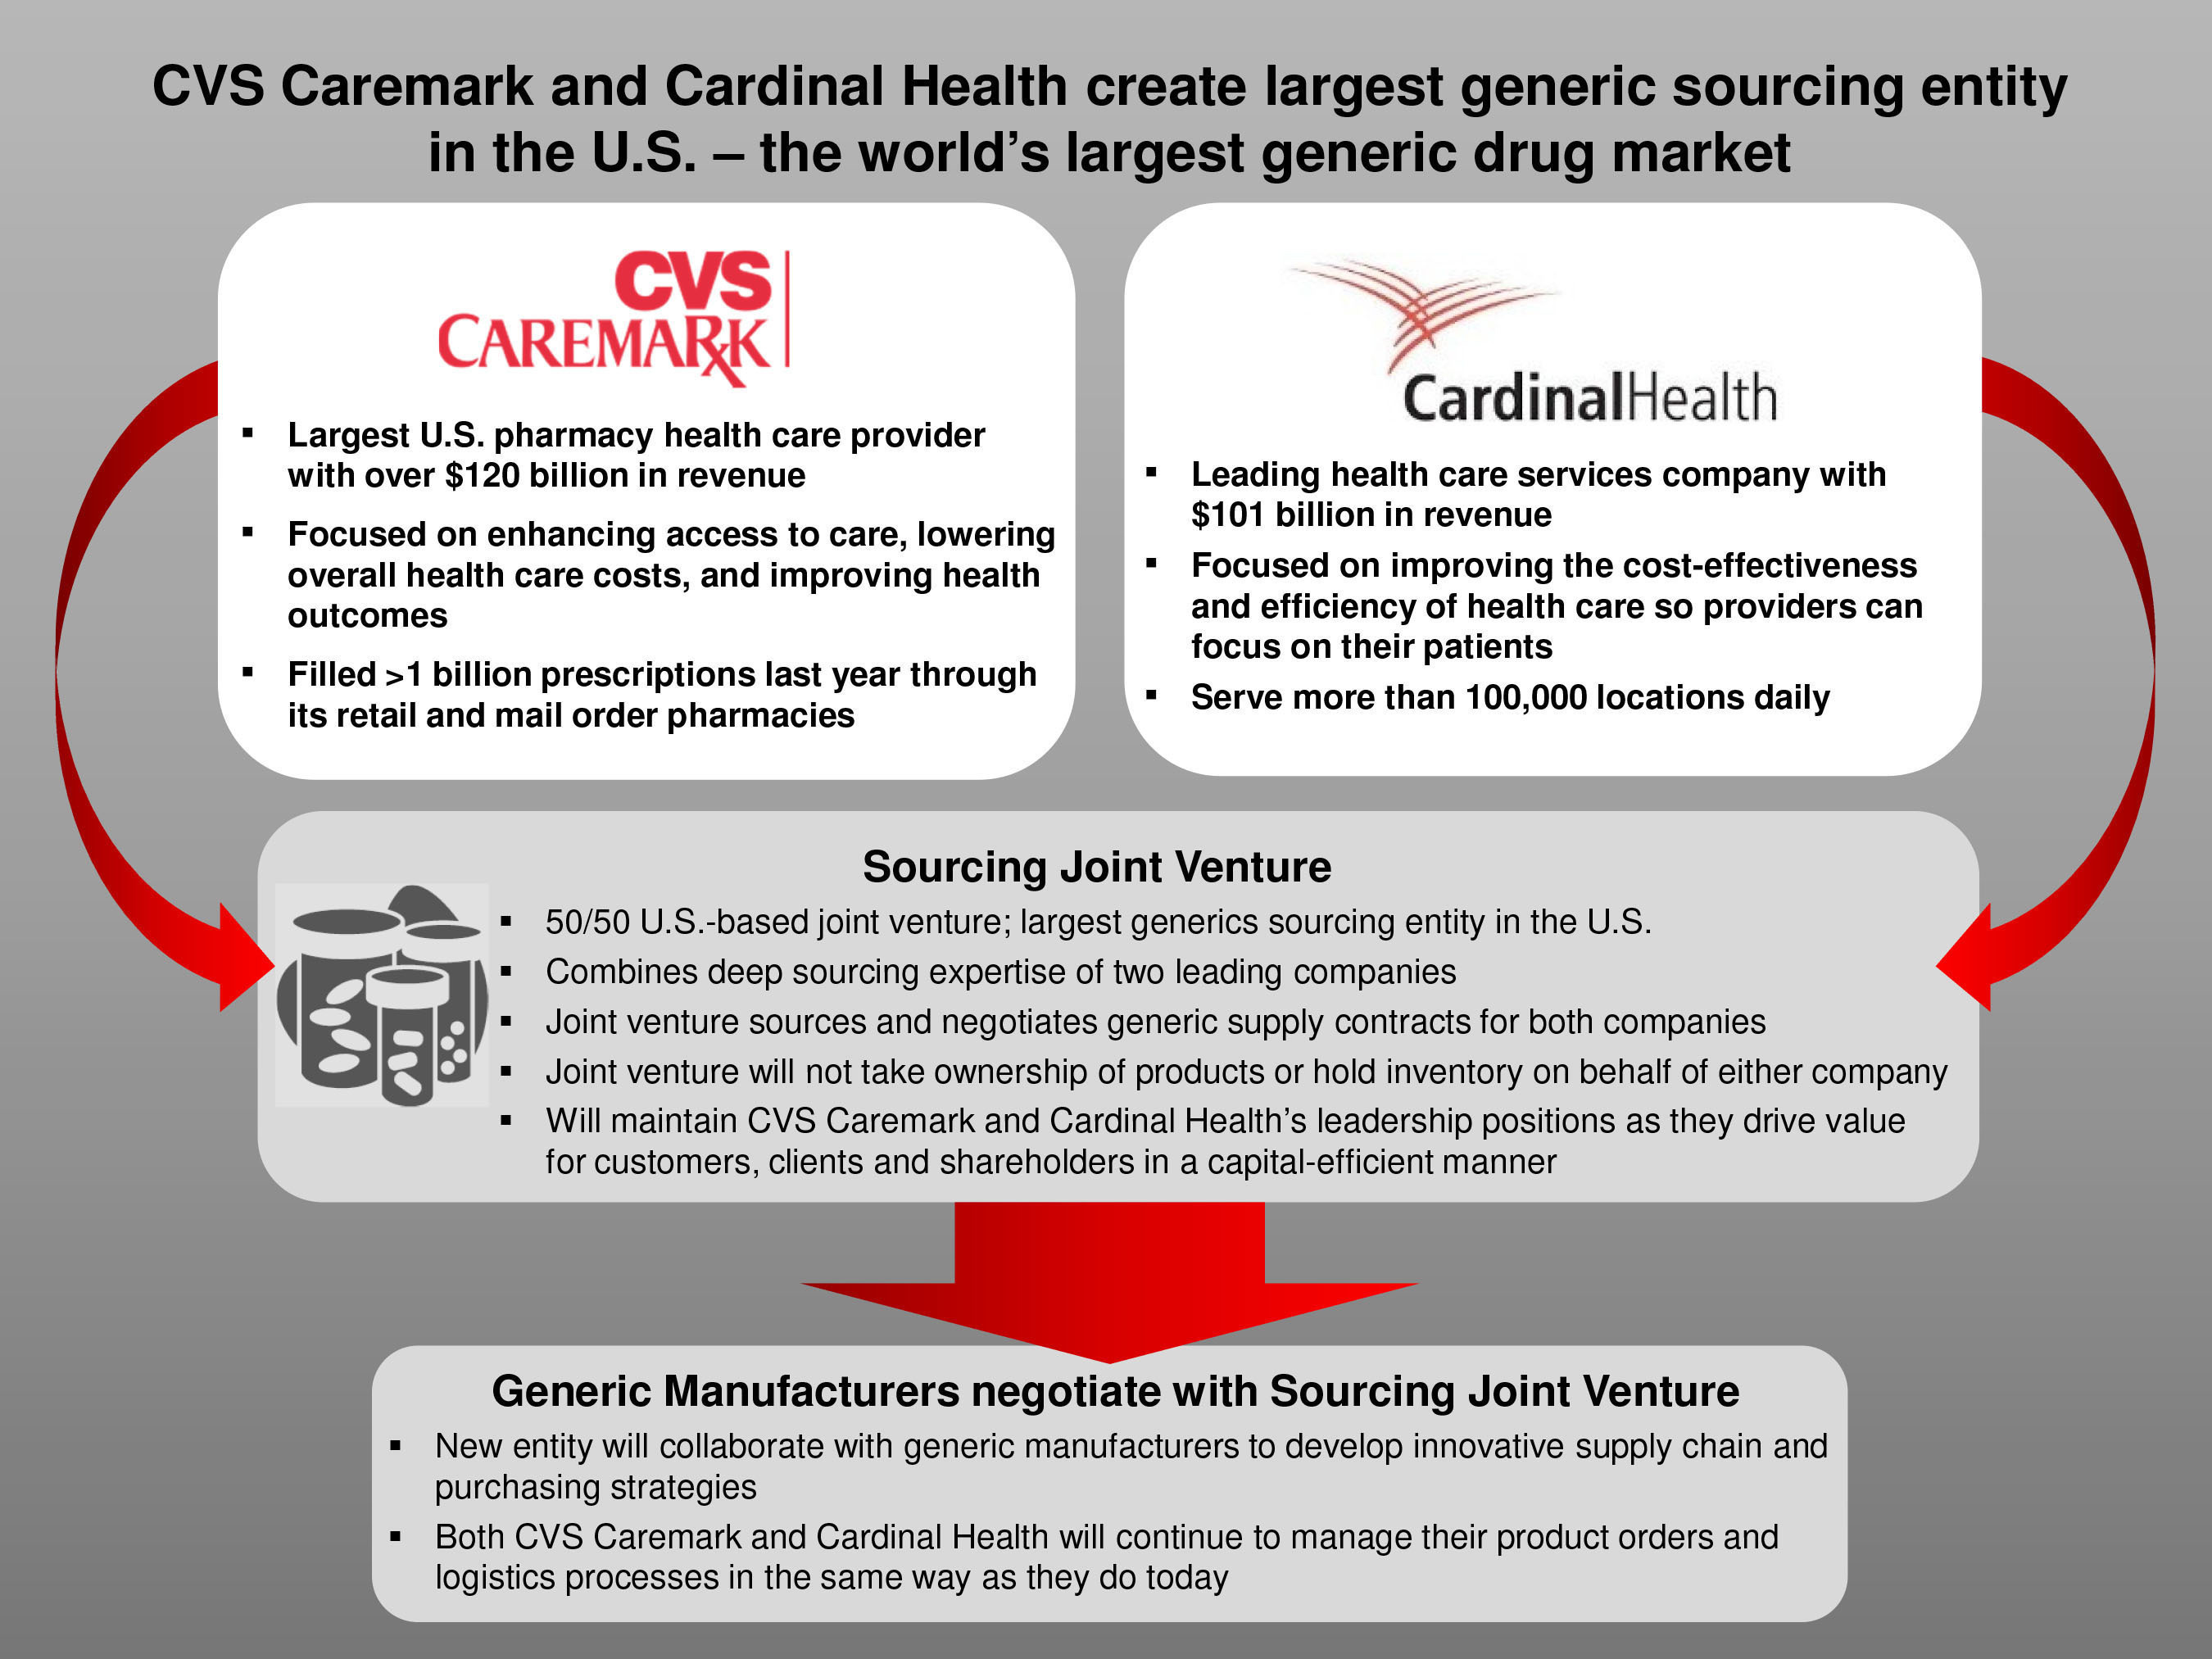 CVS Caremark And Cardinal Health Announce Creation Of Largest Generic Sourcing Entity In U.S. (PRNewsFoto/Cardinal Health) (PRNewsFoto/CARDINAL HEALTH)